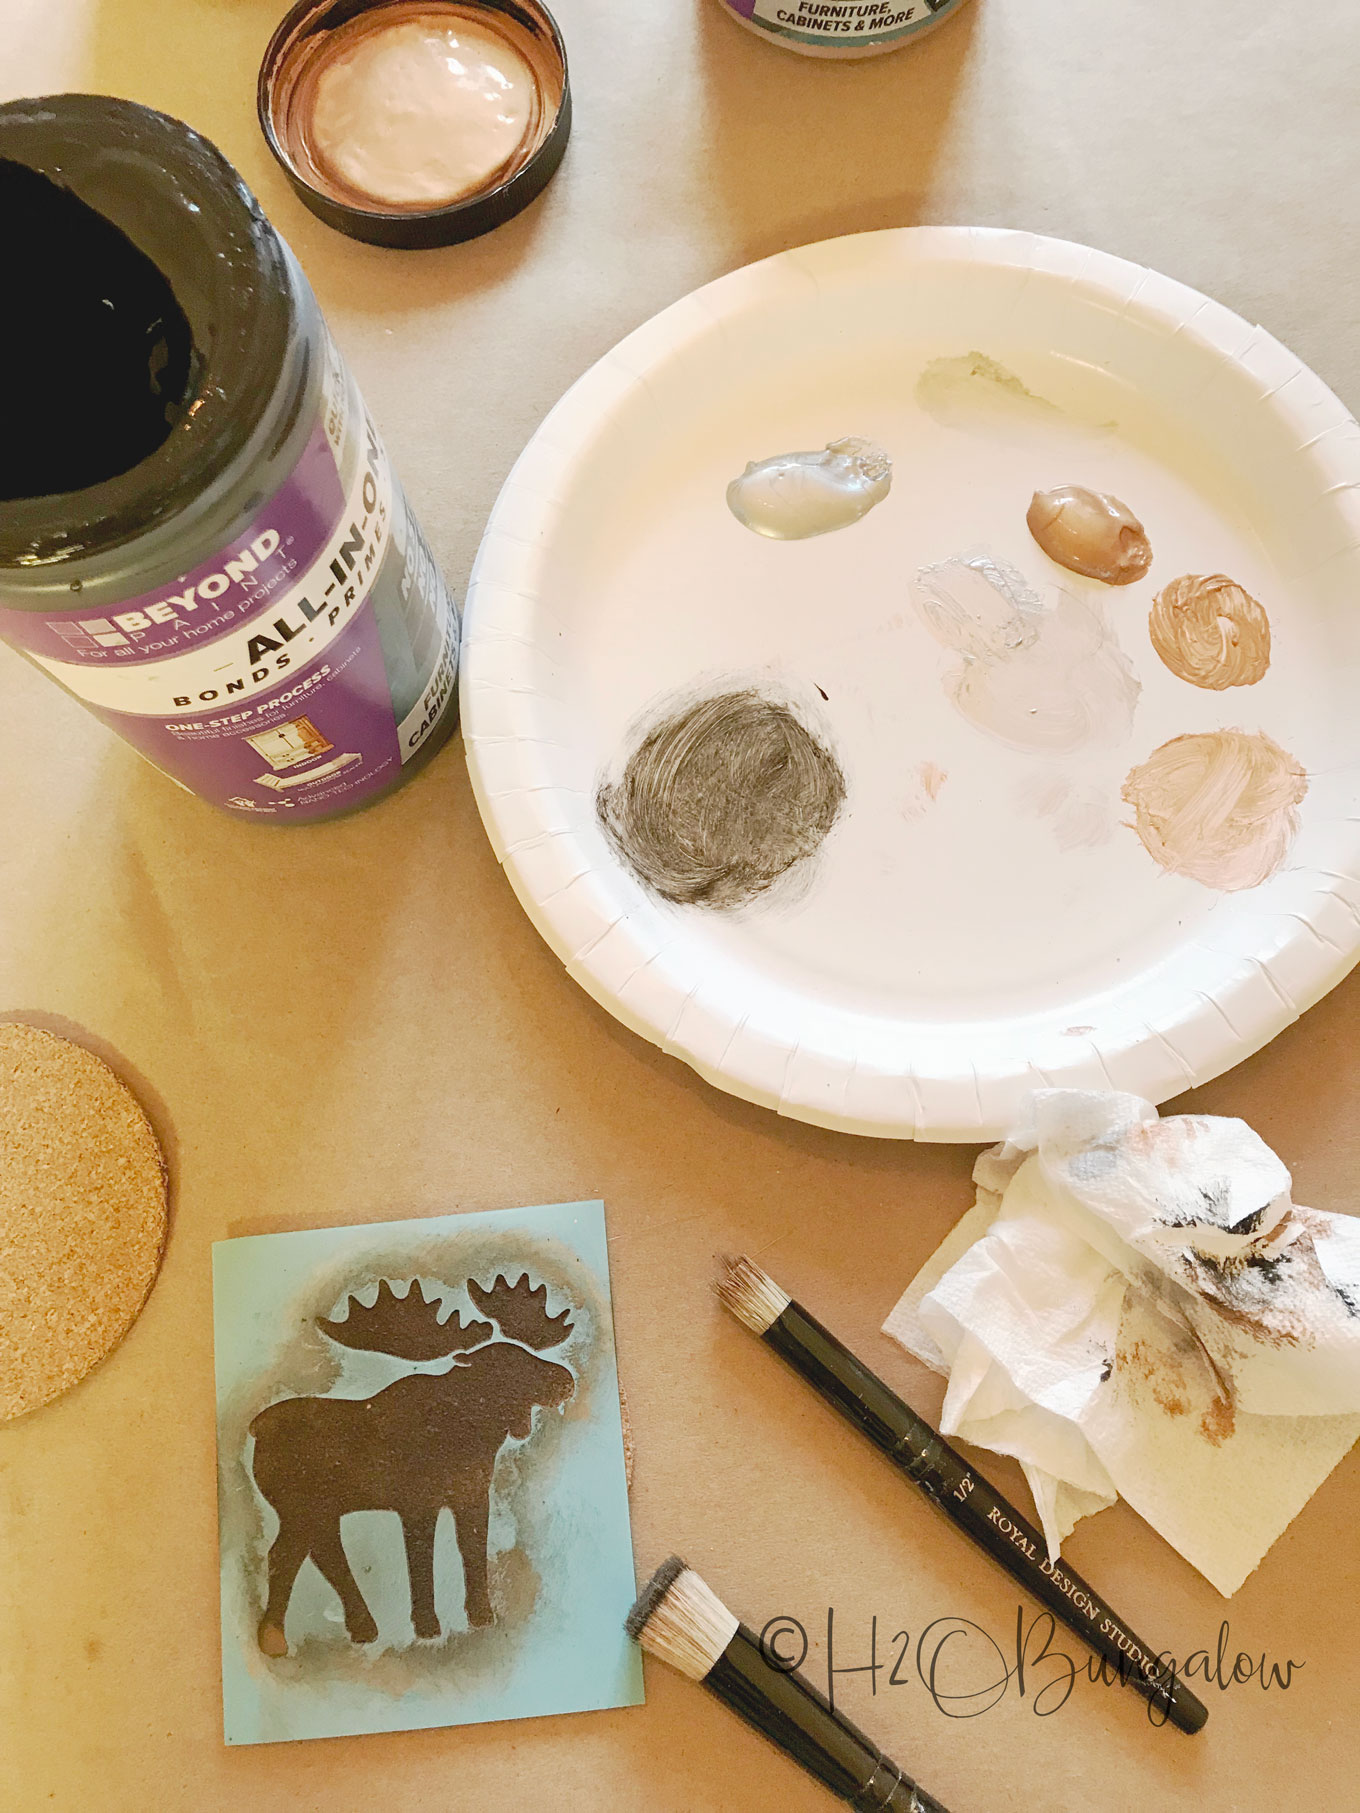 Paint colors on paper plate with moose stencil and small paintbush